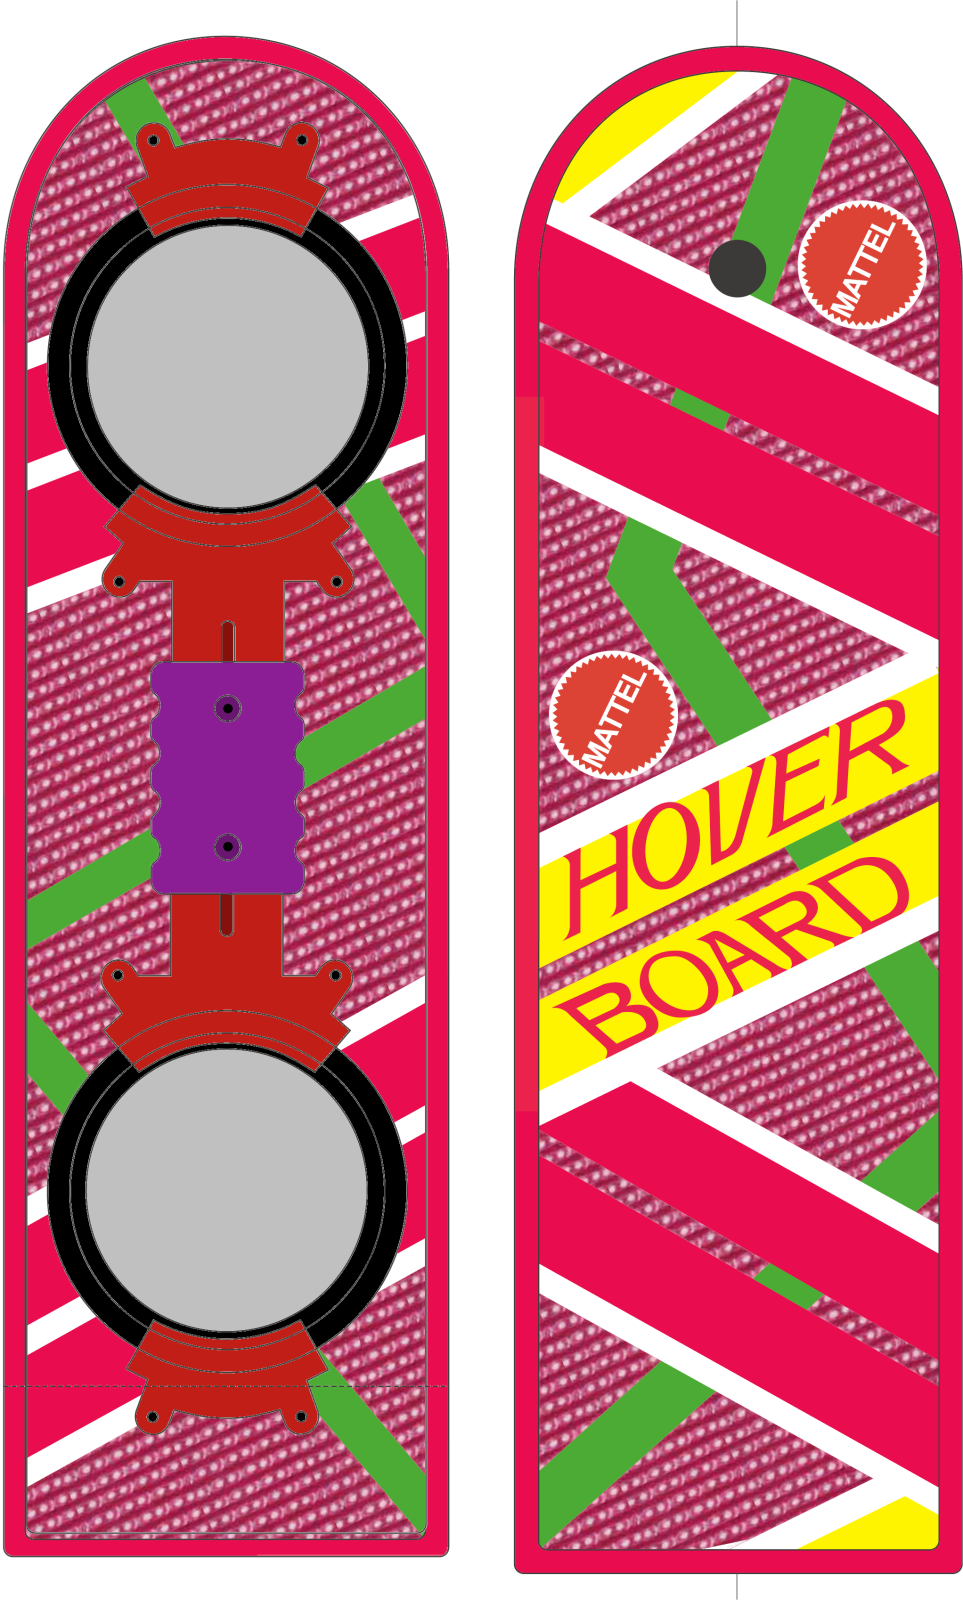 963x1600 Bttf2 Hoverboard Plans And Graphics